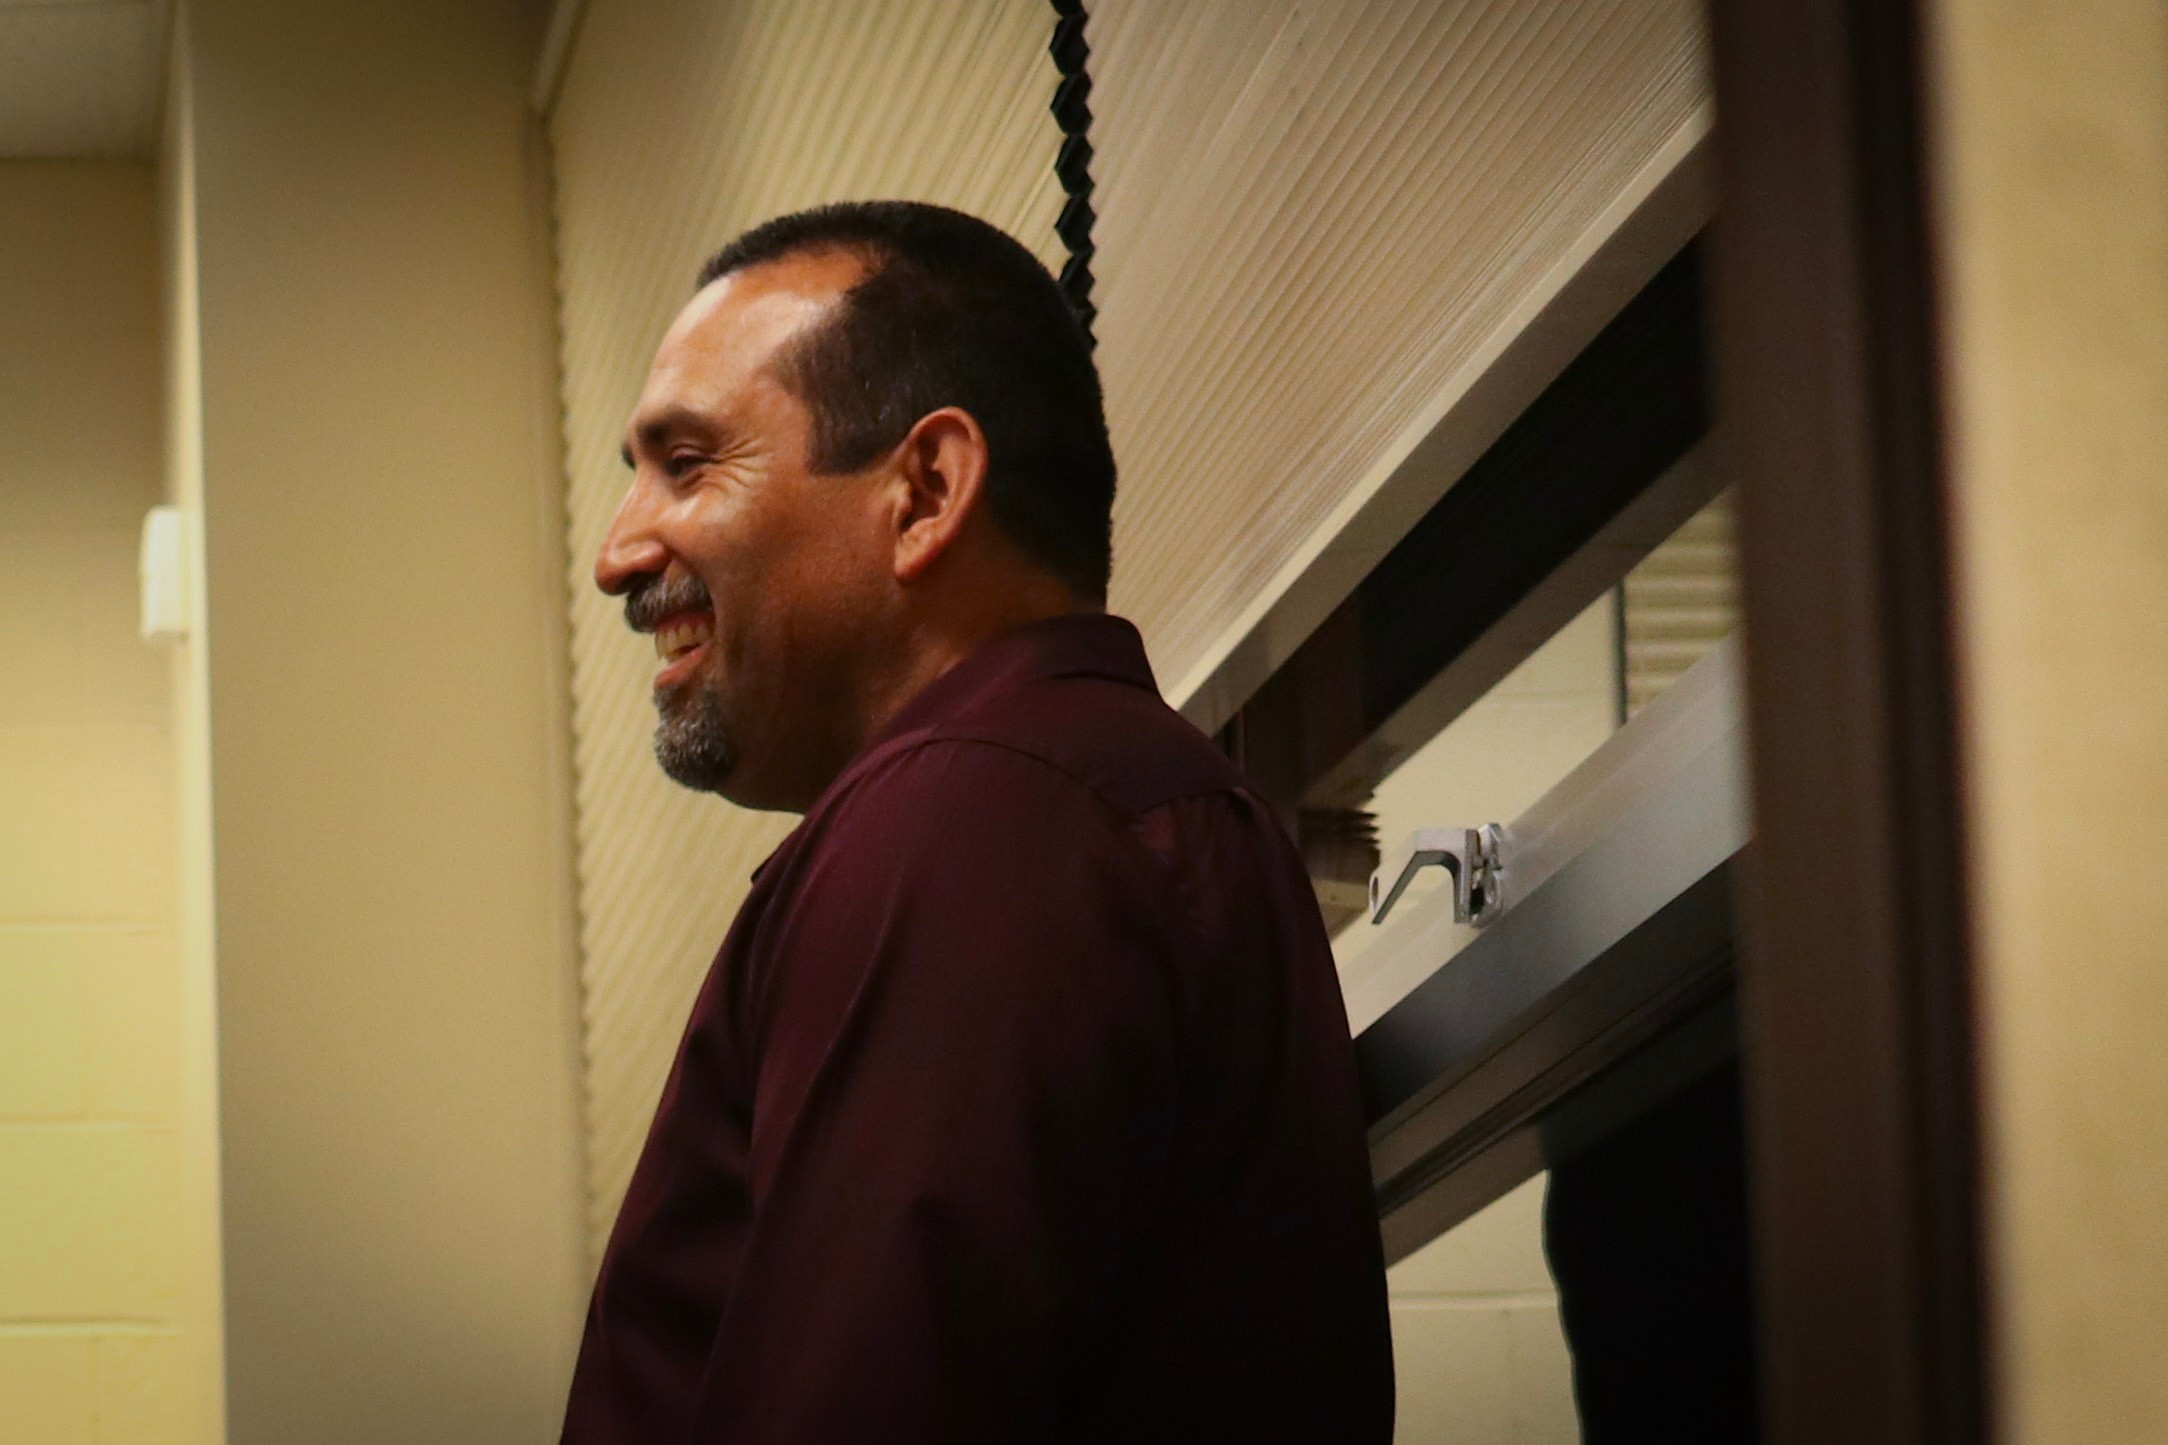 Ricky Cadriel smiles and laughs while talking with students.